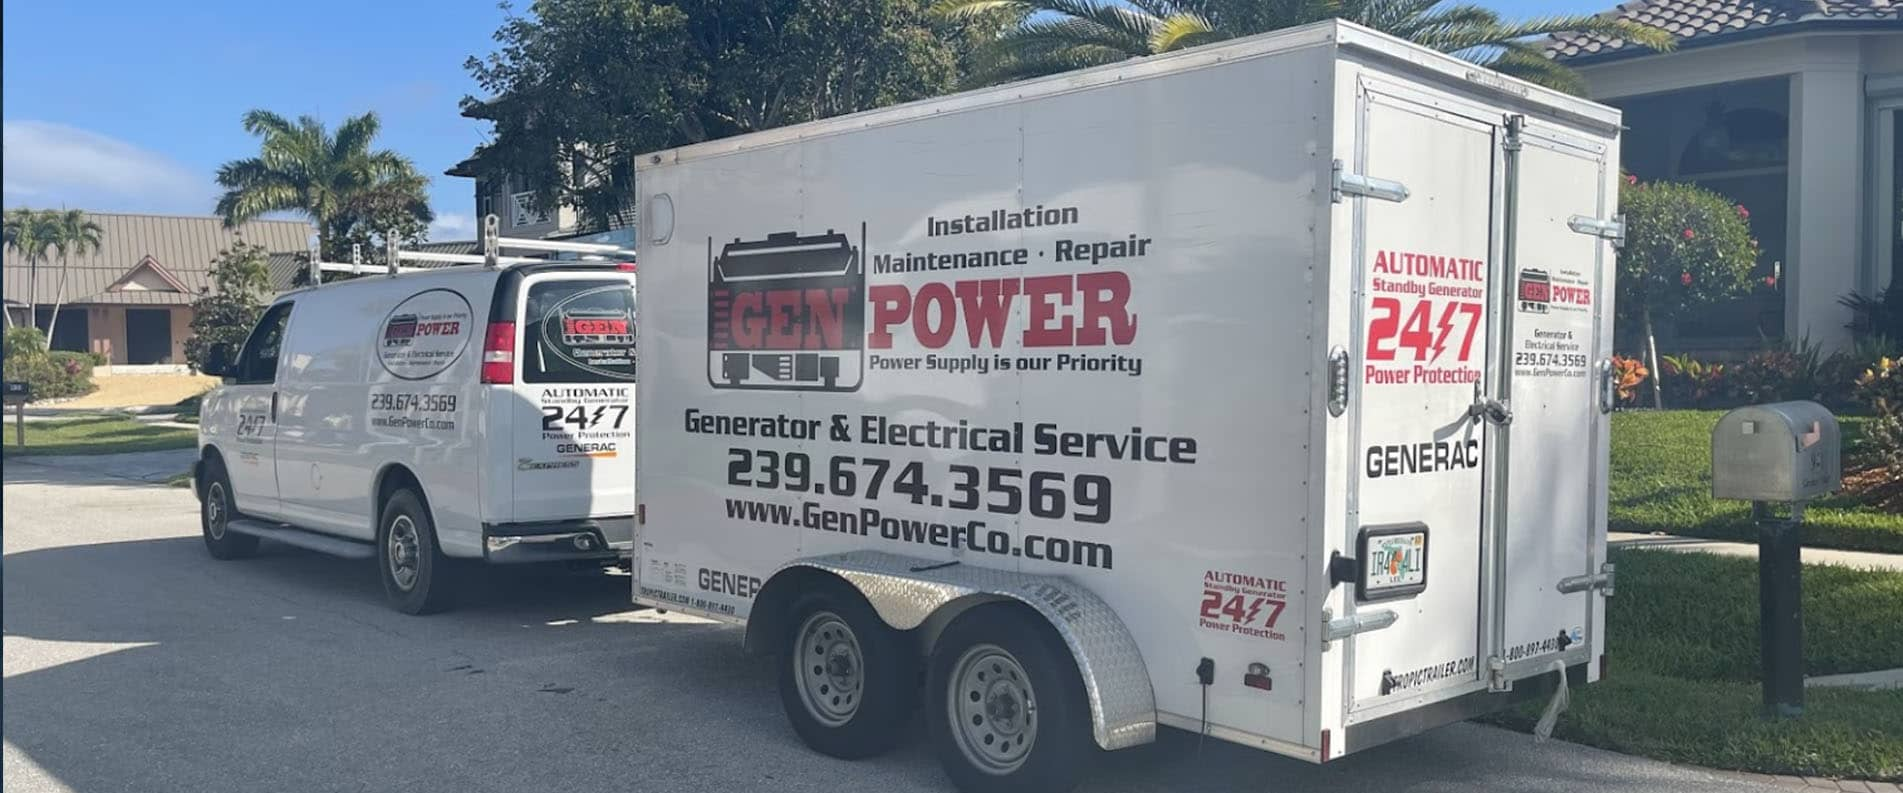 Fort Myers Generator Installation Services, Standby Generators and Generator Repair